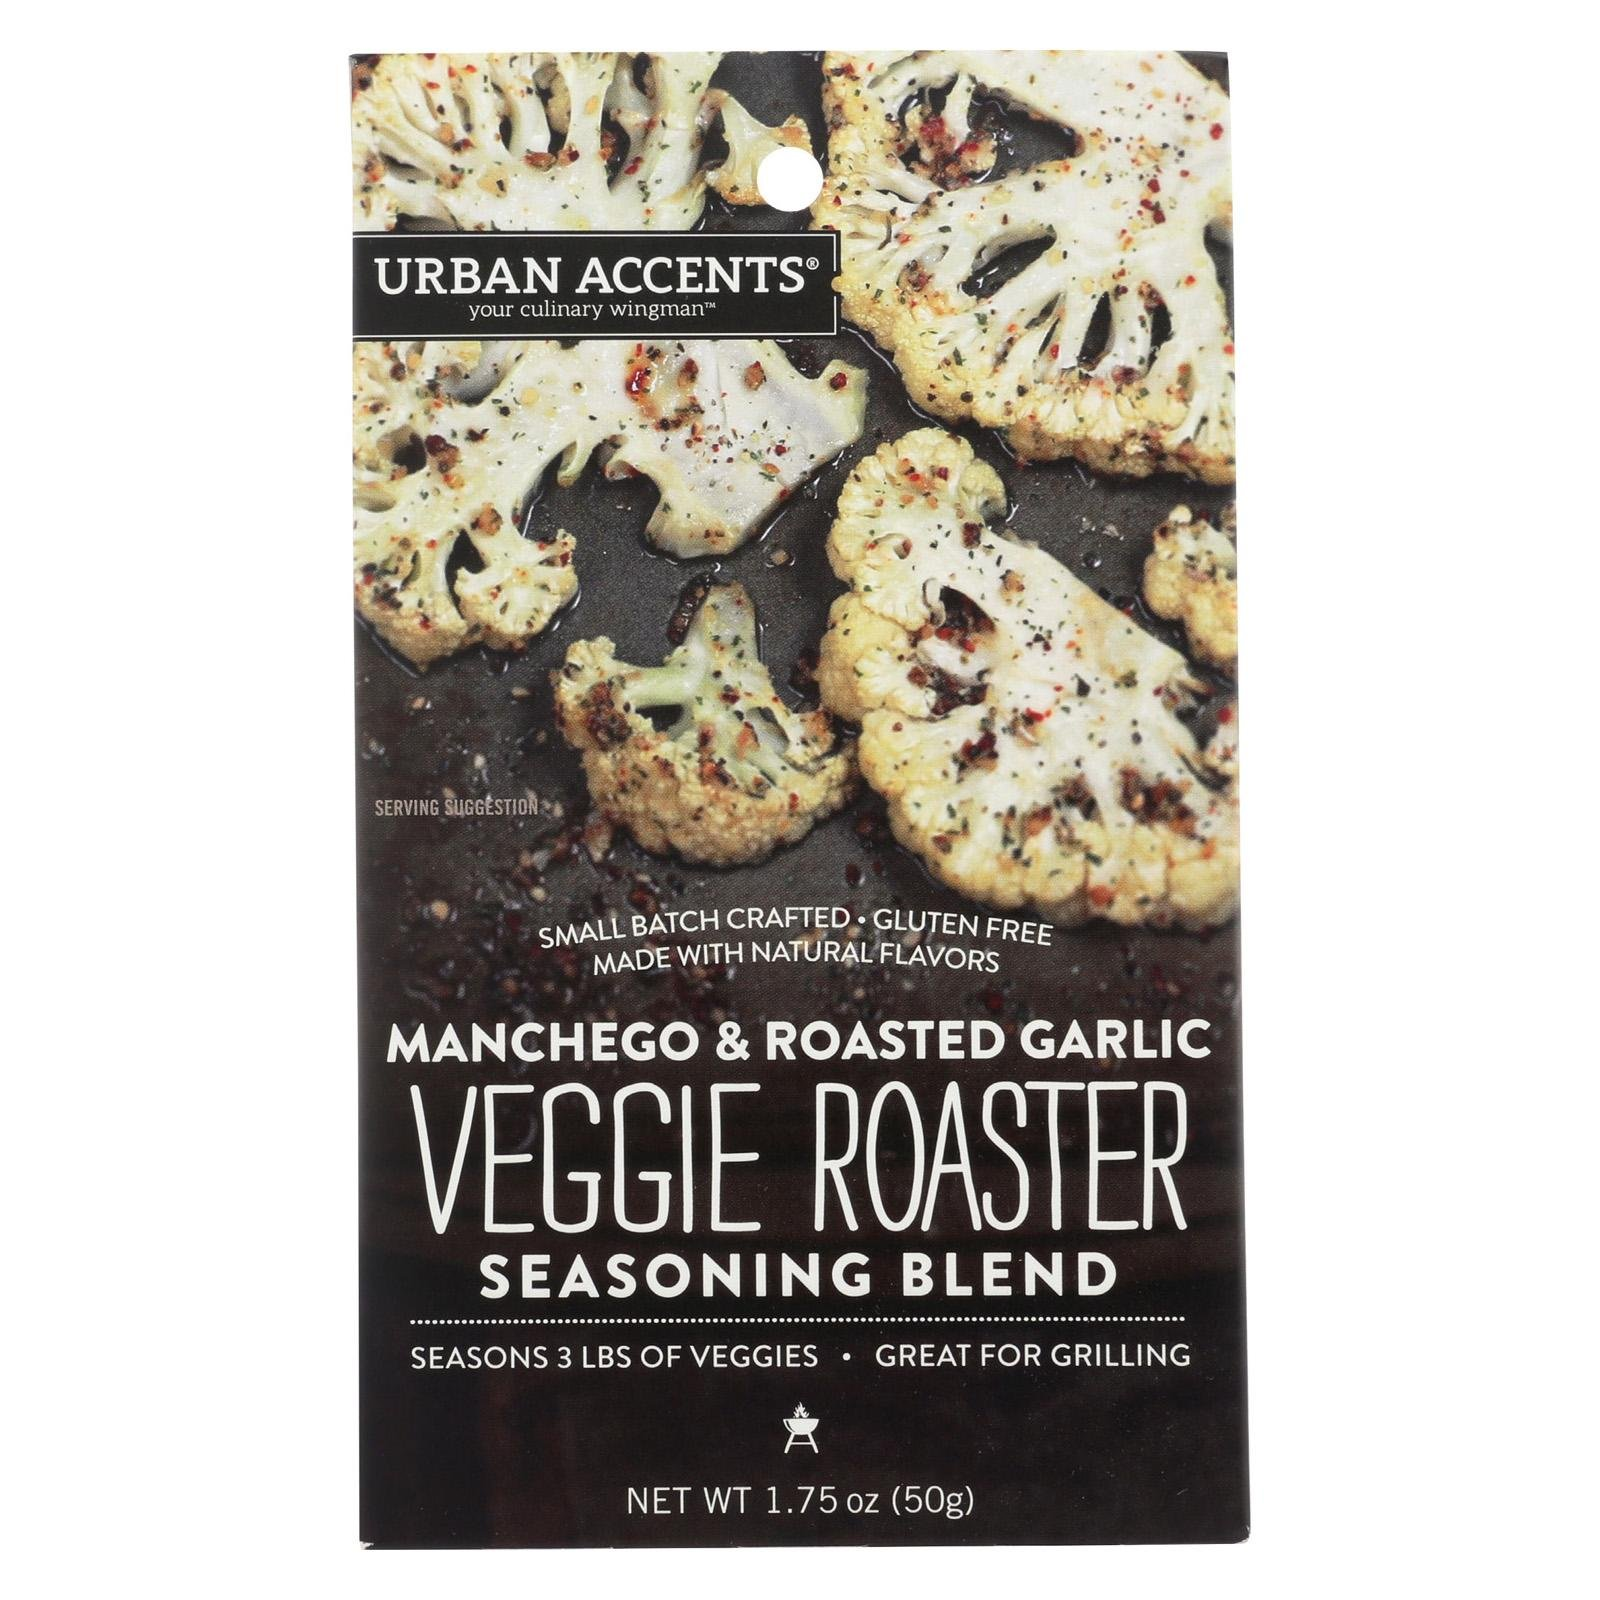 Urban Accents Your Culinary Wingman Manchego Roasted Garlic Veggie Roaster Seasoning Blend, 1.75 Ounce - 6 per case.